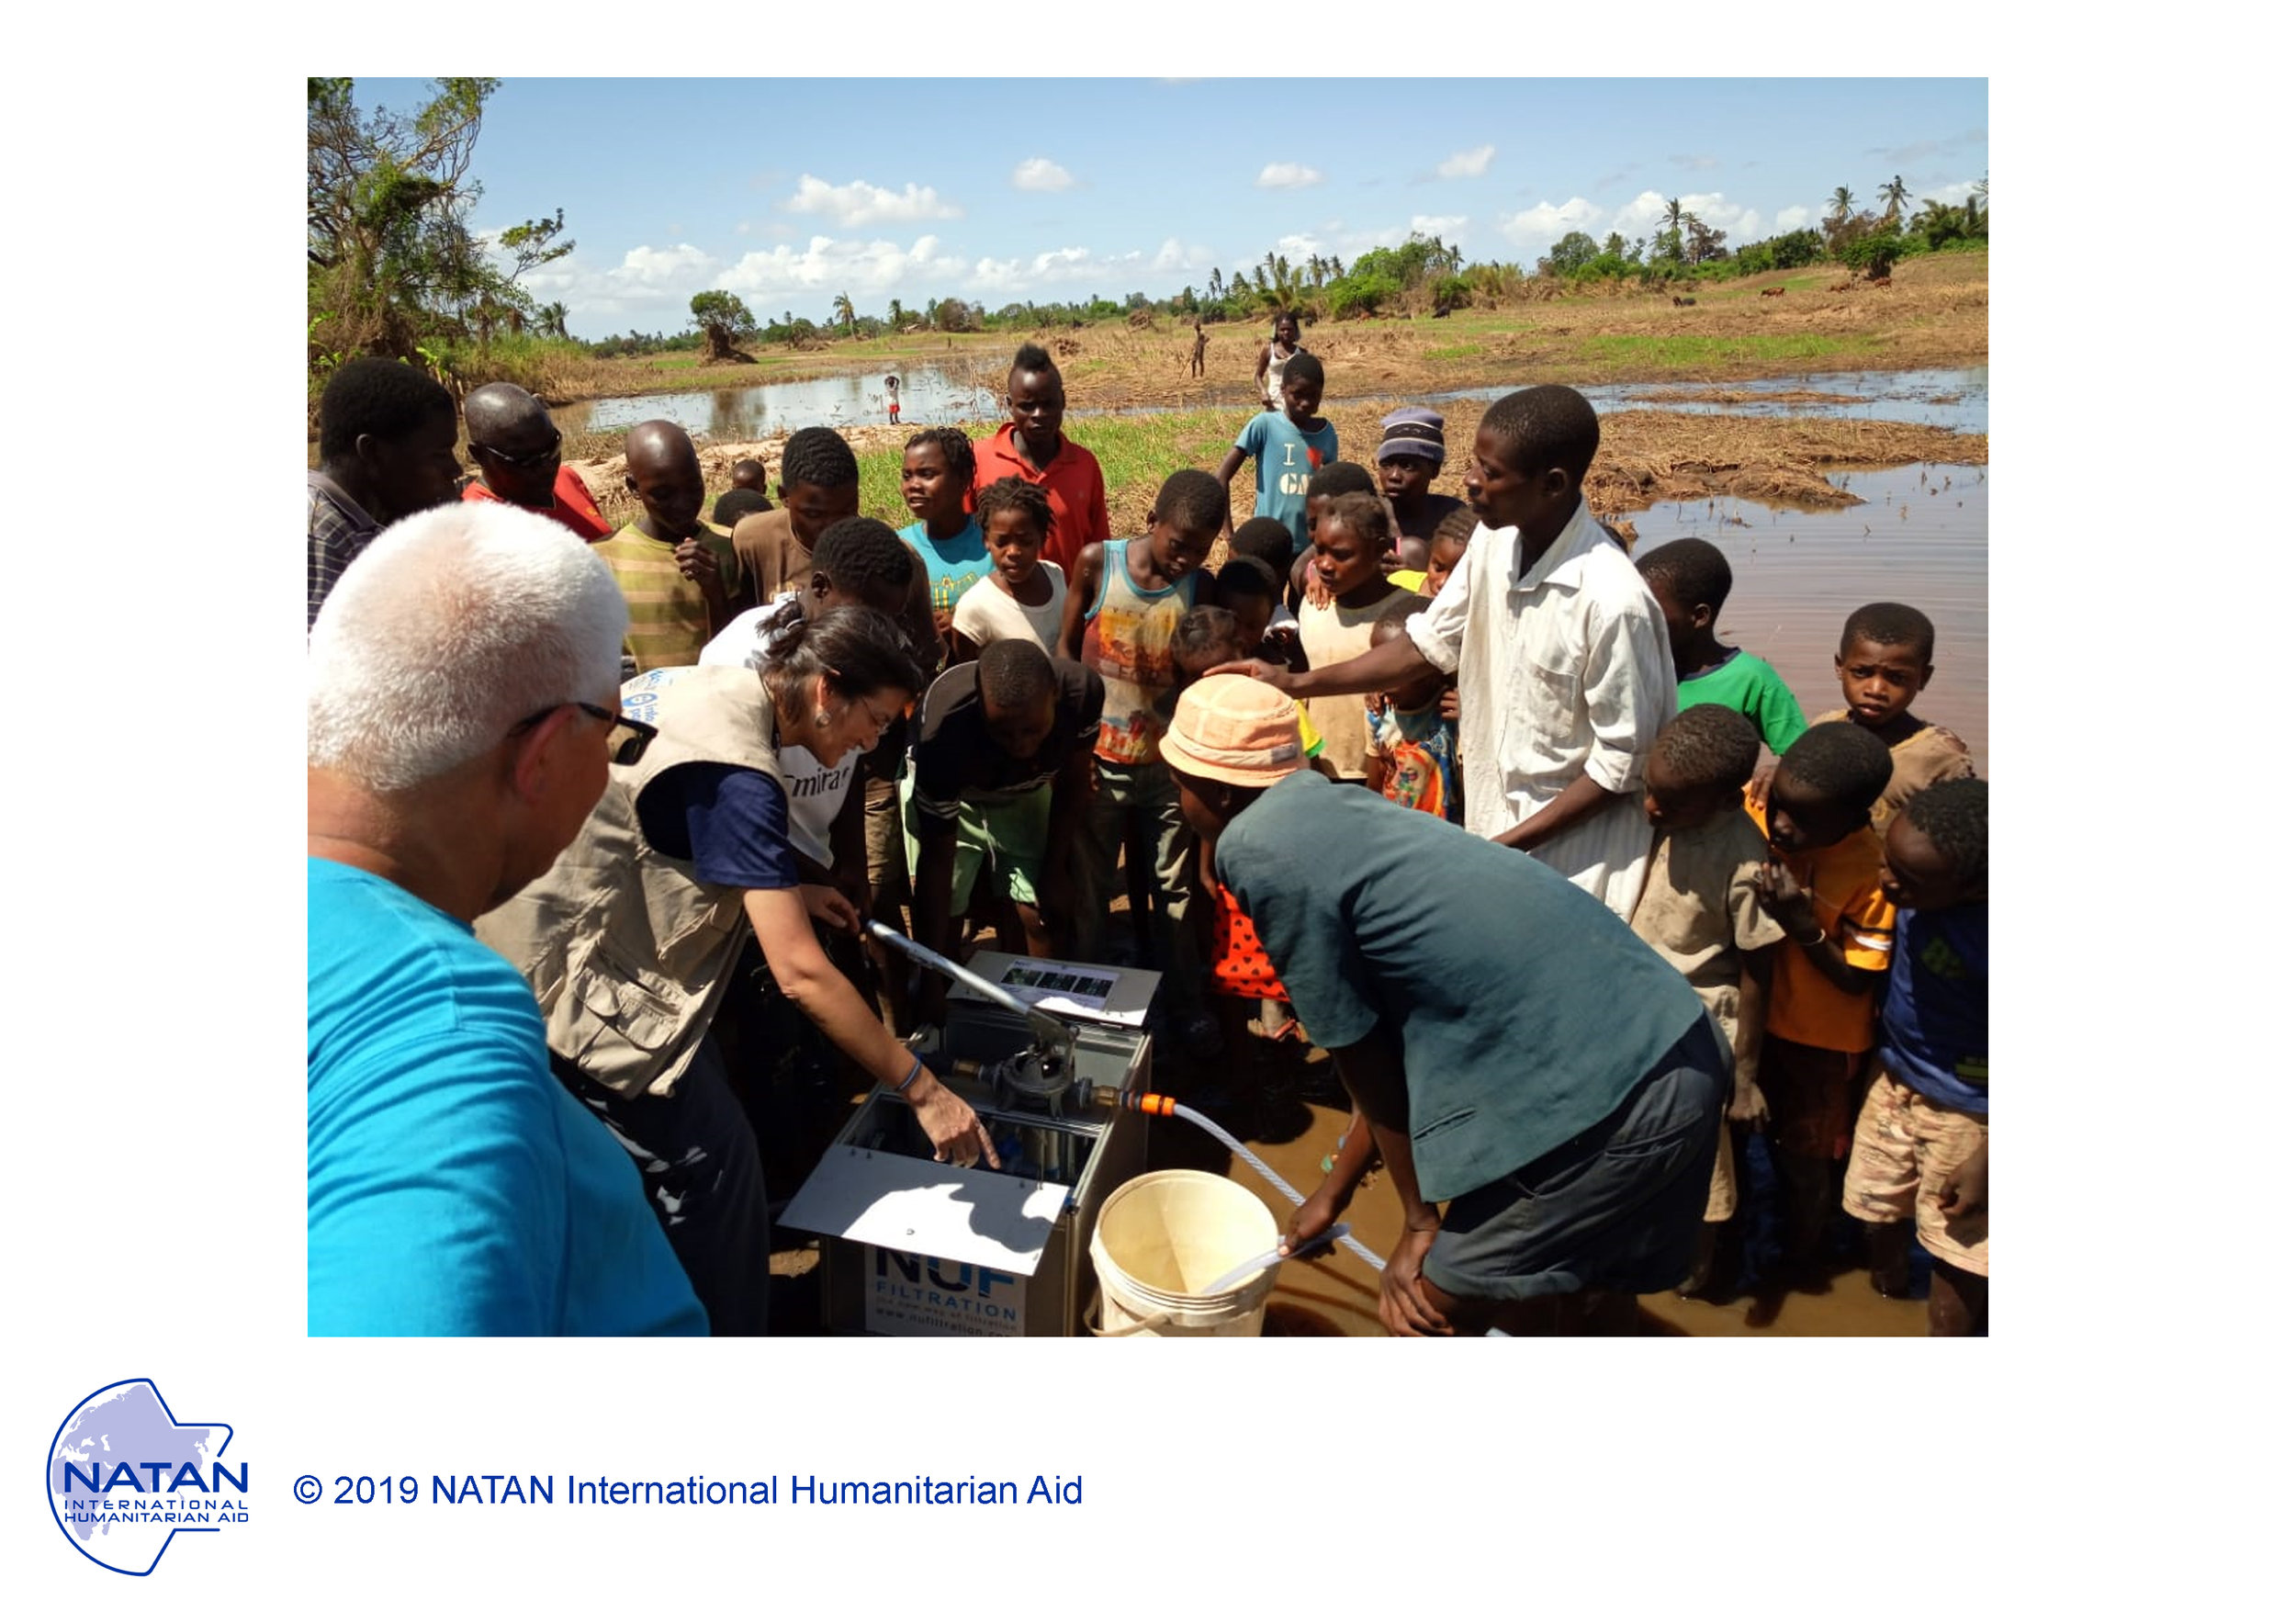 Mozambique 2019 - following cyclone idai, NATAN team teaching local villagers to use portable water filter near a source of contaminated water